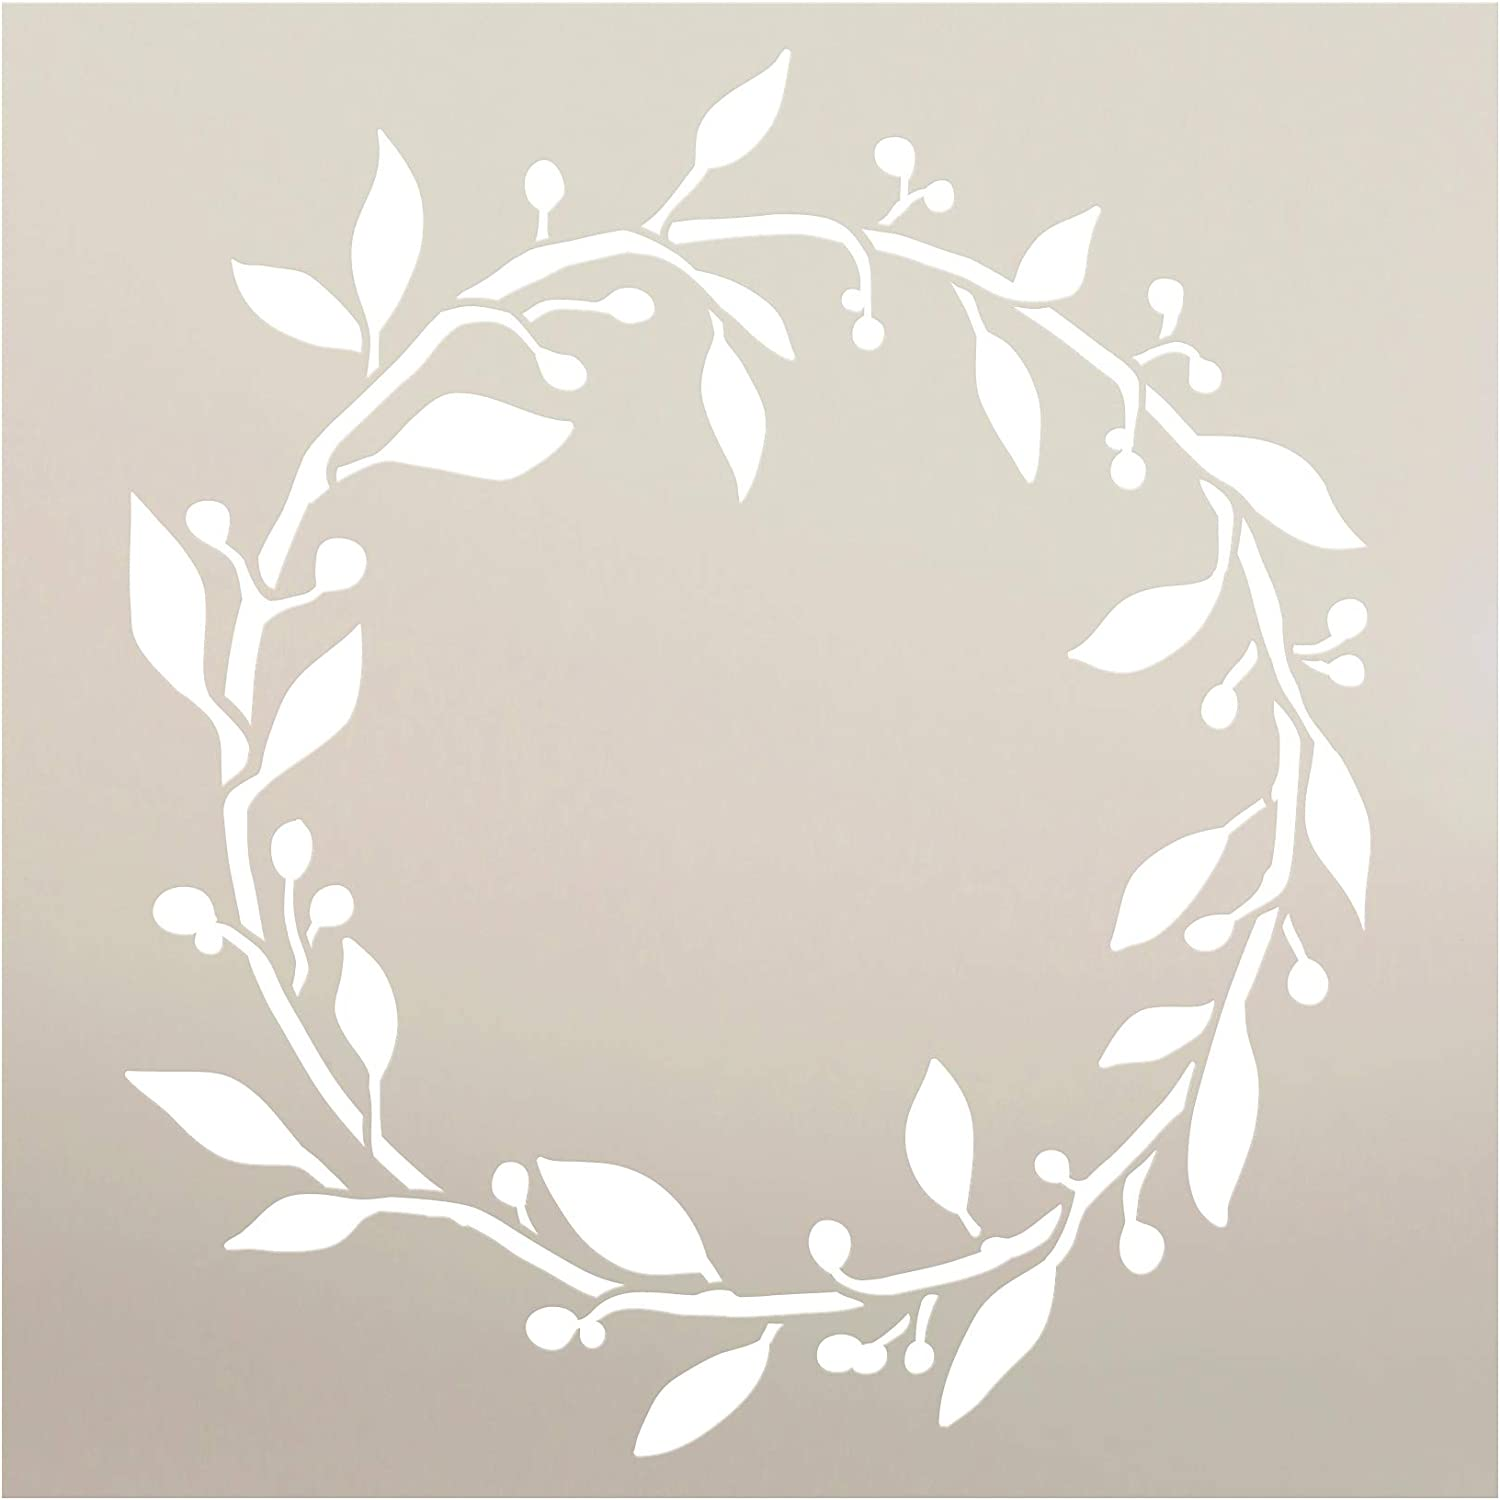 "Leaf & Berry Wreath Stencil by StudioR12 | DIY Plant Outdoor Home Decor | Simple Rustic Nature Garden Gift | Craft Farmhouse Laurel Vine Porch | Reusable Mylar Template | Paint Wood Sign (9"" x 9"")"